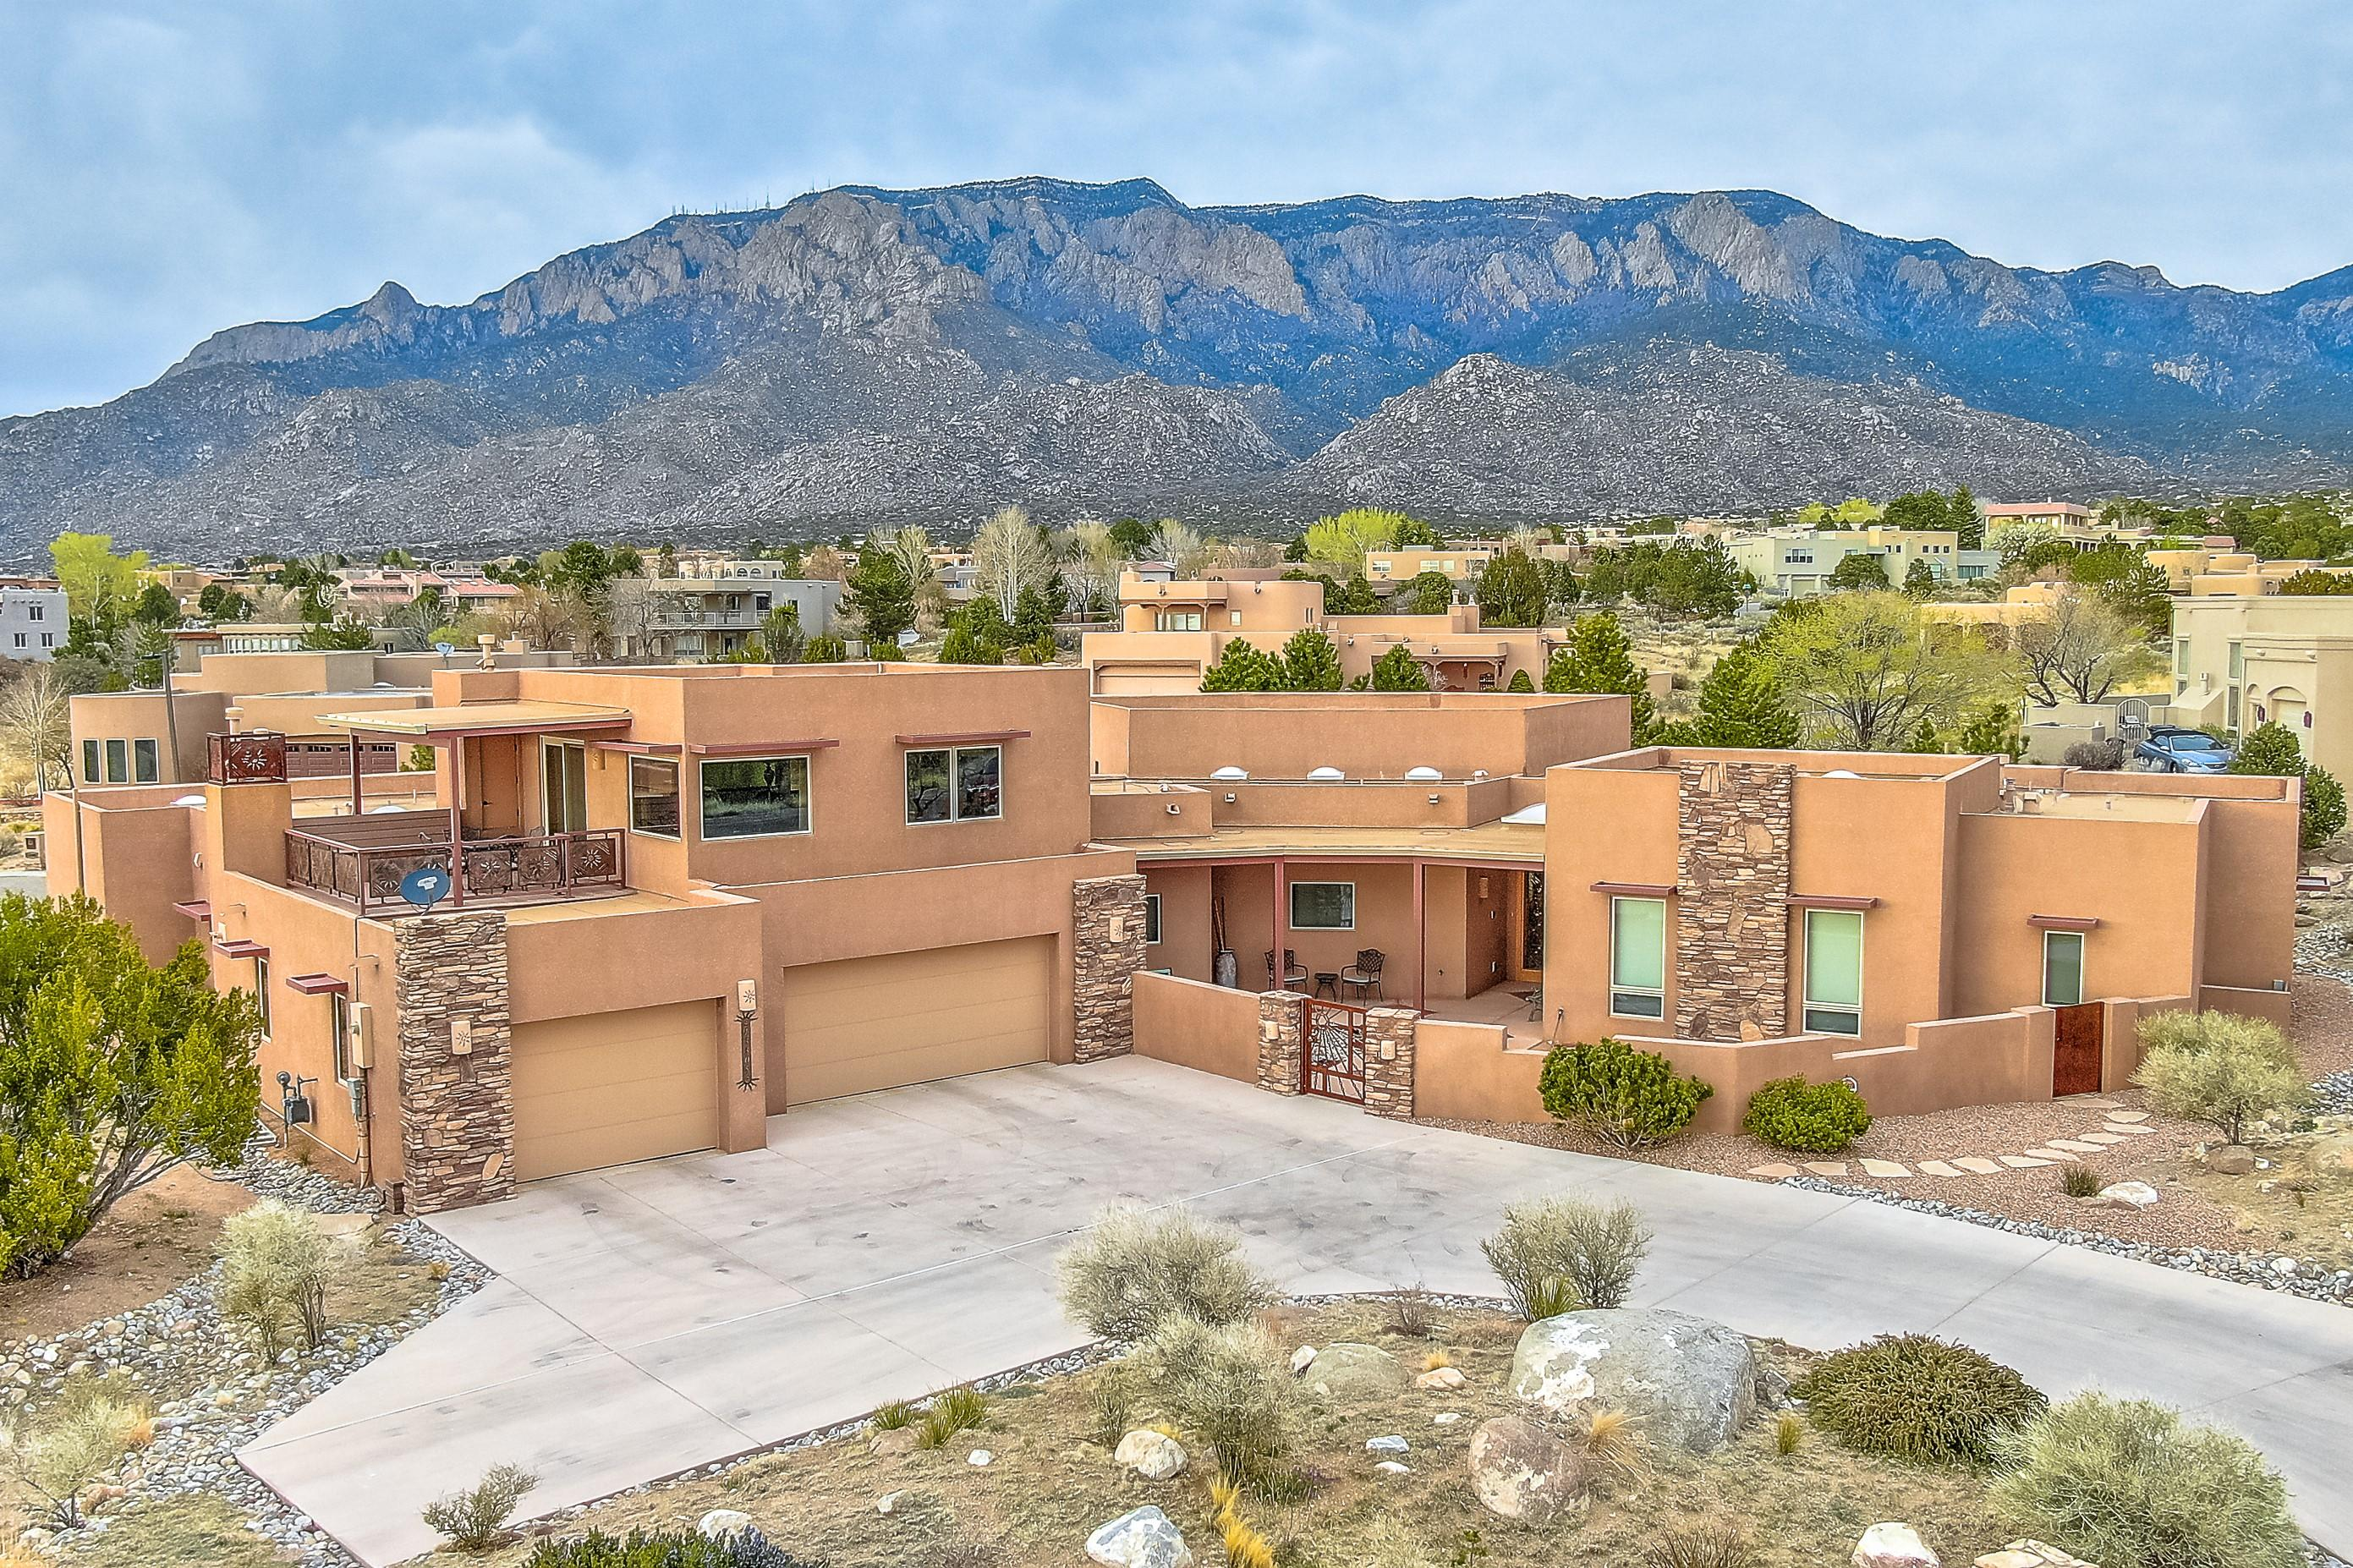 Unique High Desert Estate Lot home with a Danish Modern Vibe, Soft Contemporary/Southwest Flair, & Features that cater well to Artist, Hobbyist, Home Office, & Family needs! Single Story configuration with an Upper Level Rec Room offers a 360 Panorama of the Mountains & Valley. Well Equipped Kitchen & Expansive Island seamlessly access the Mountains & Great Room adorned with Nordic Beam accents. Master Suite with Spacious Dual Closets & a front row Mountain View from your Pillows. Home Office with a To Die For View, plus Workshop & flex Studio Space, will prime your Creative, Practical, & Business Pursuits. Thoughtful Construction & Design Detail, including ADA spec Wide Halls & Doorways. Kinetico RO Filter & Water Conditioning. Low Maintenance/Low Water Landscaping. A Spectacular Home!!